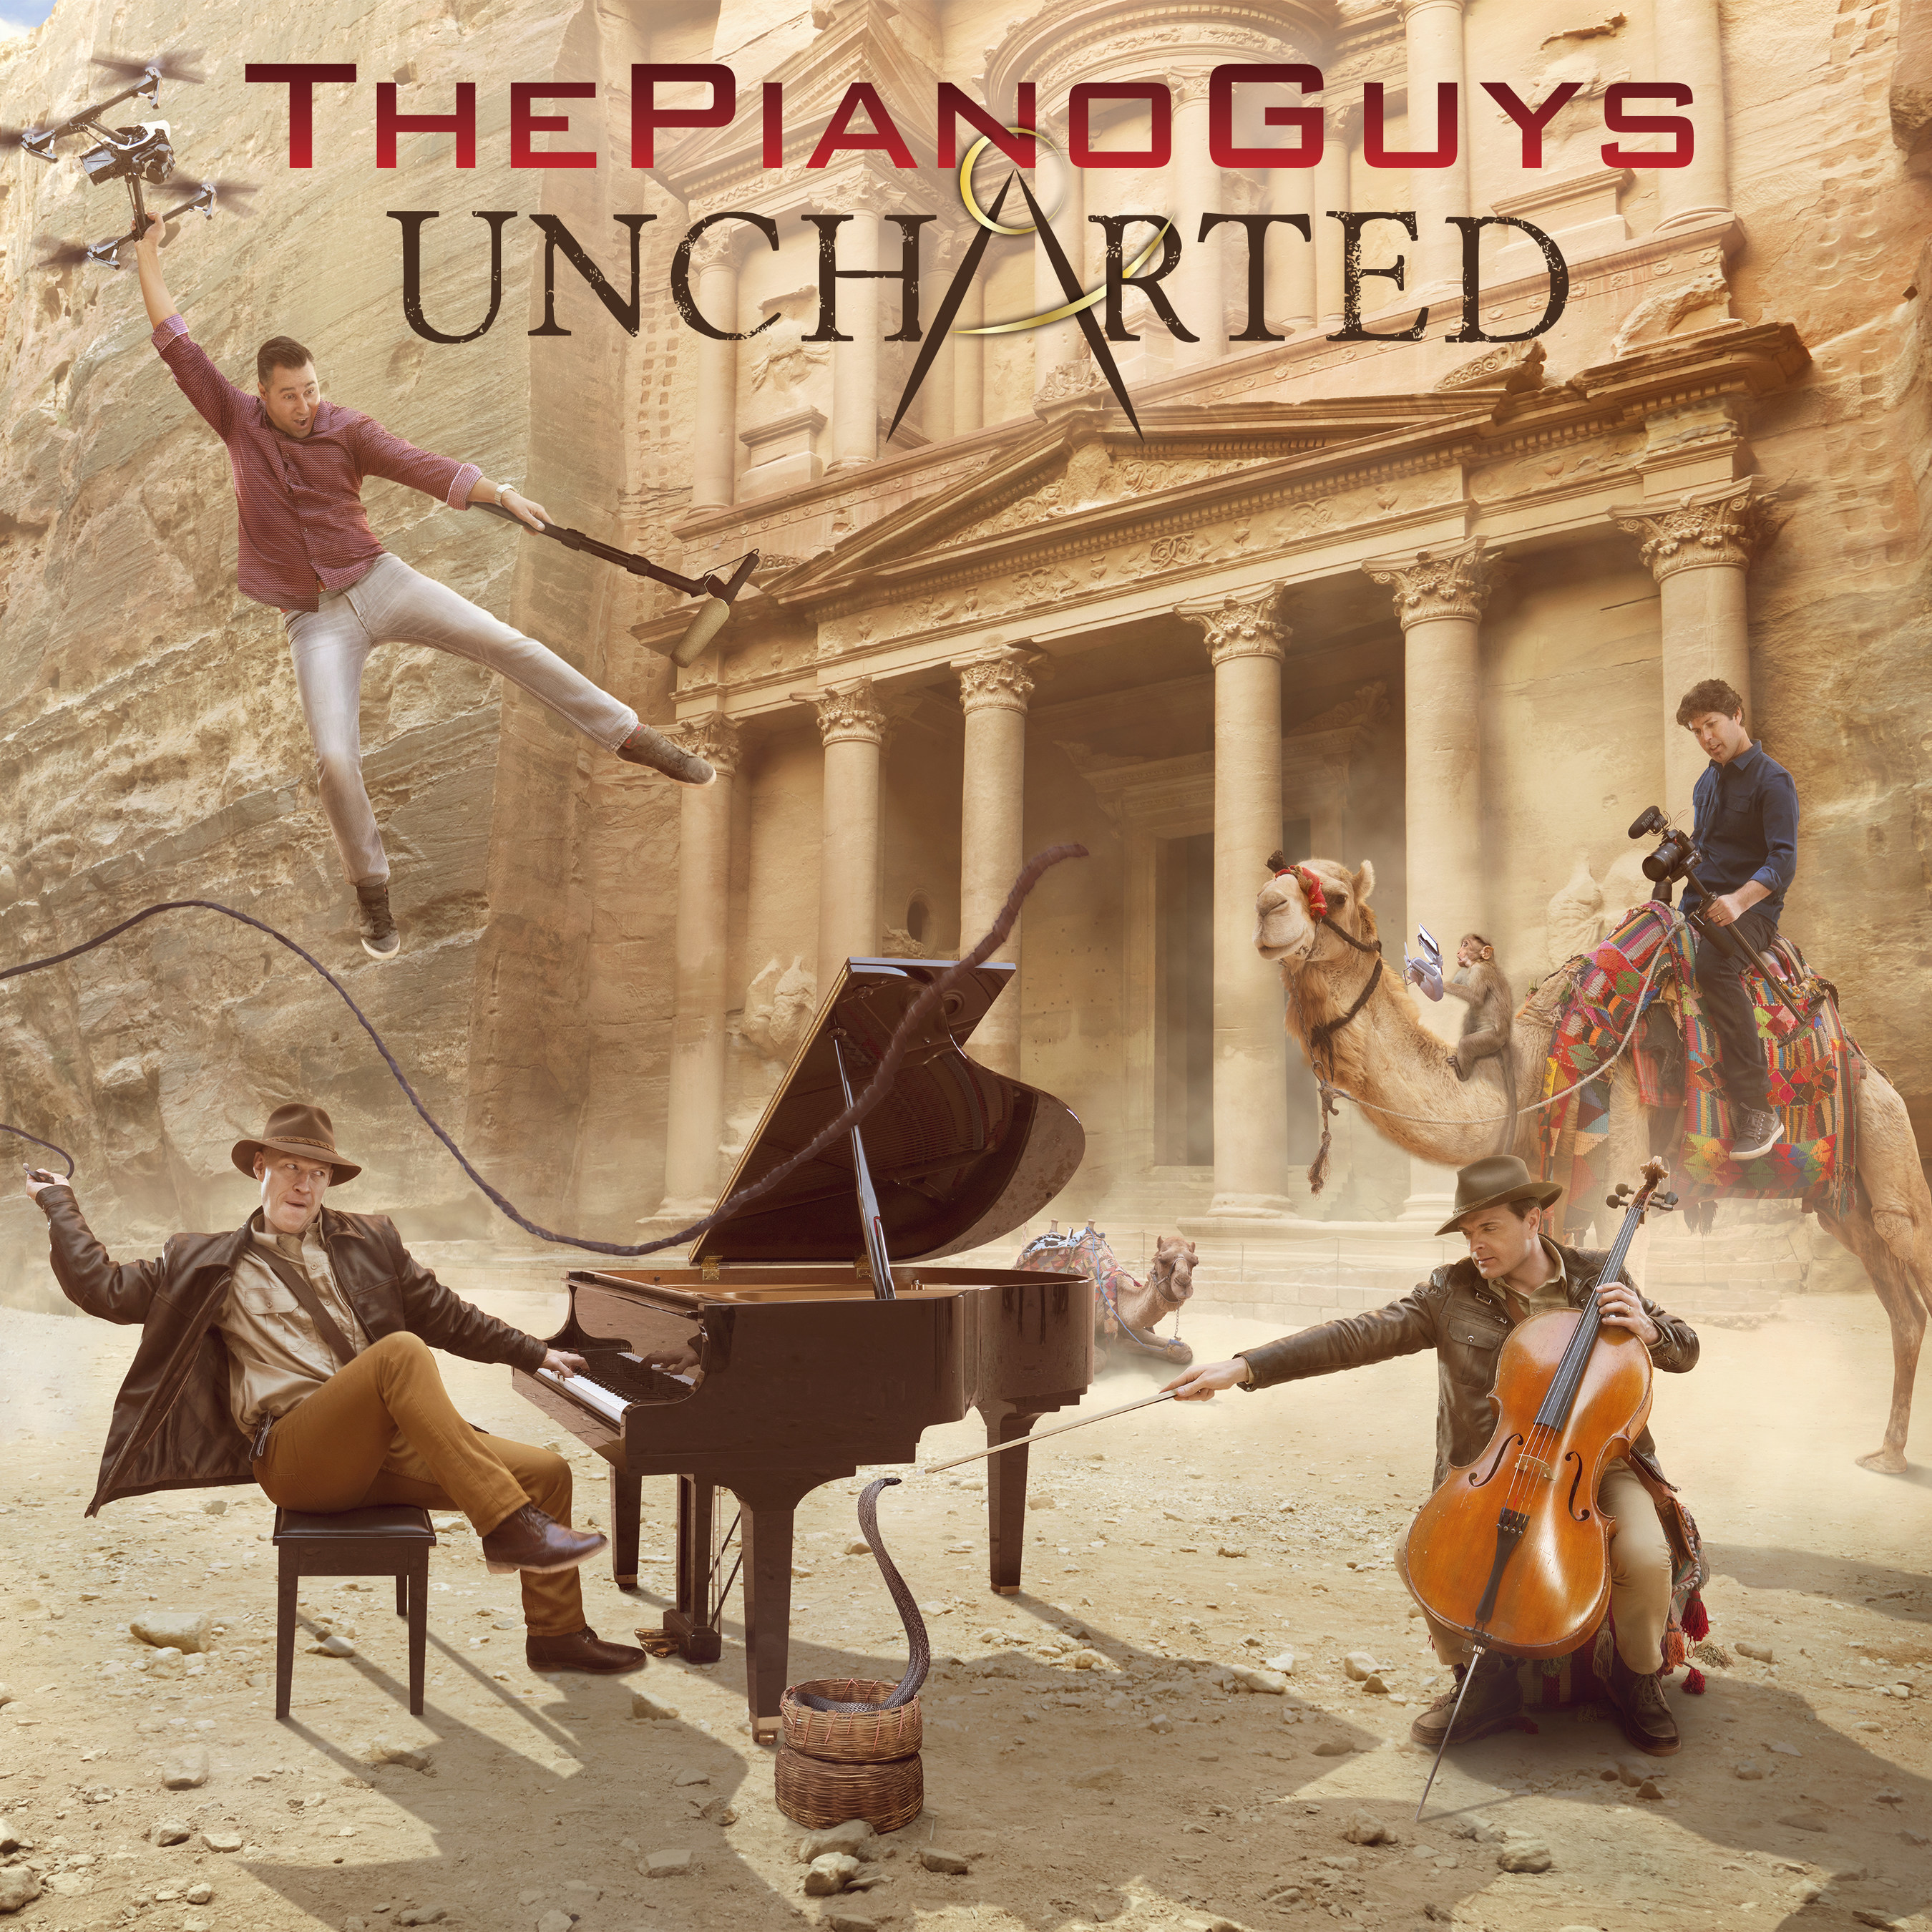 The Piano Guys Announce New Album Uncharted And Release New Music Video For 'Okay'